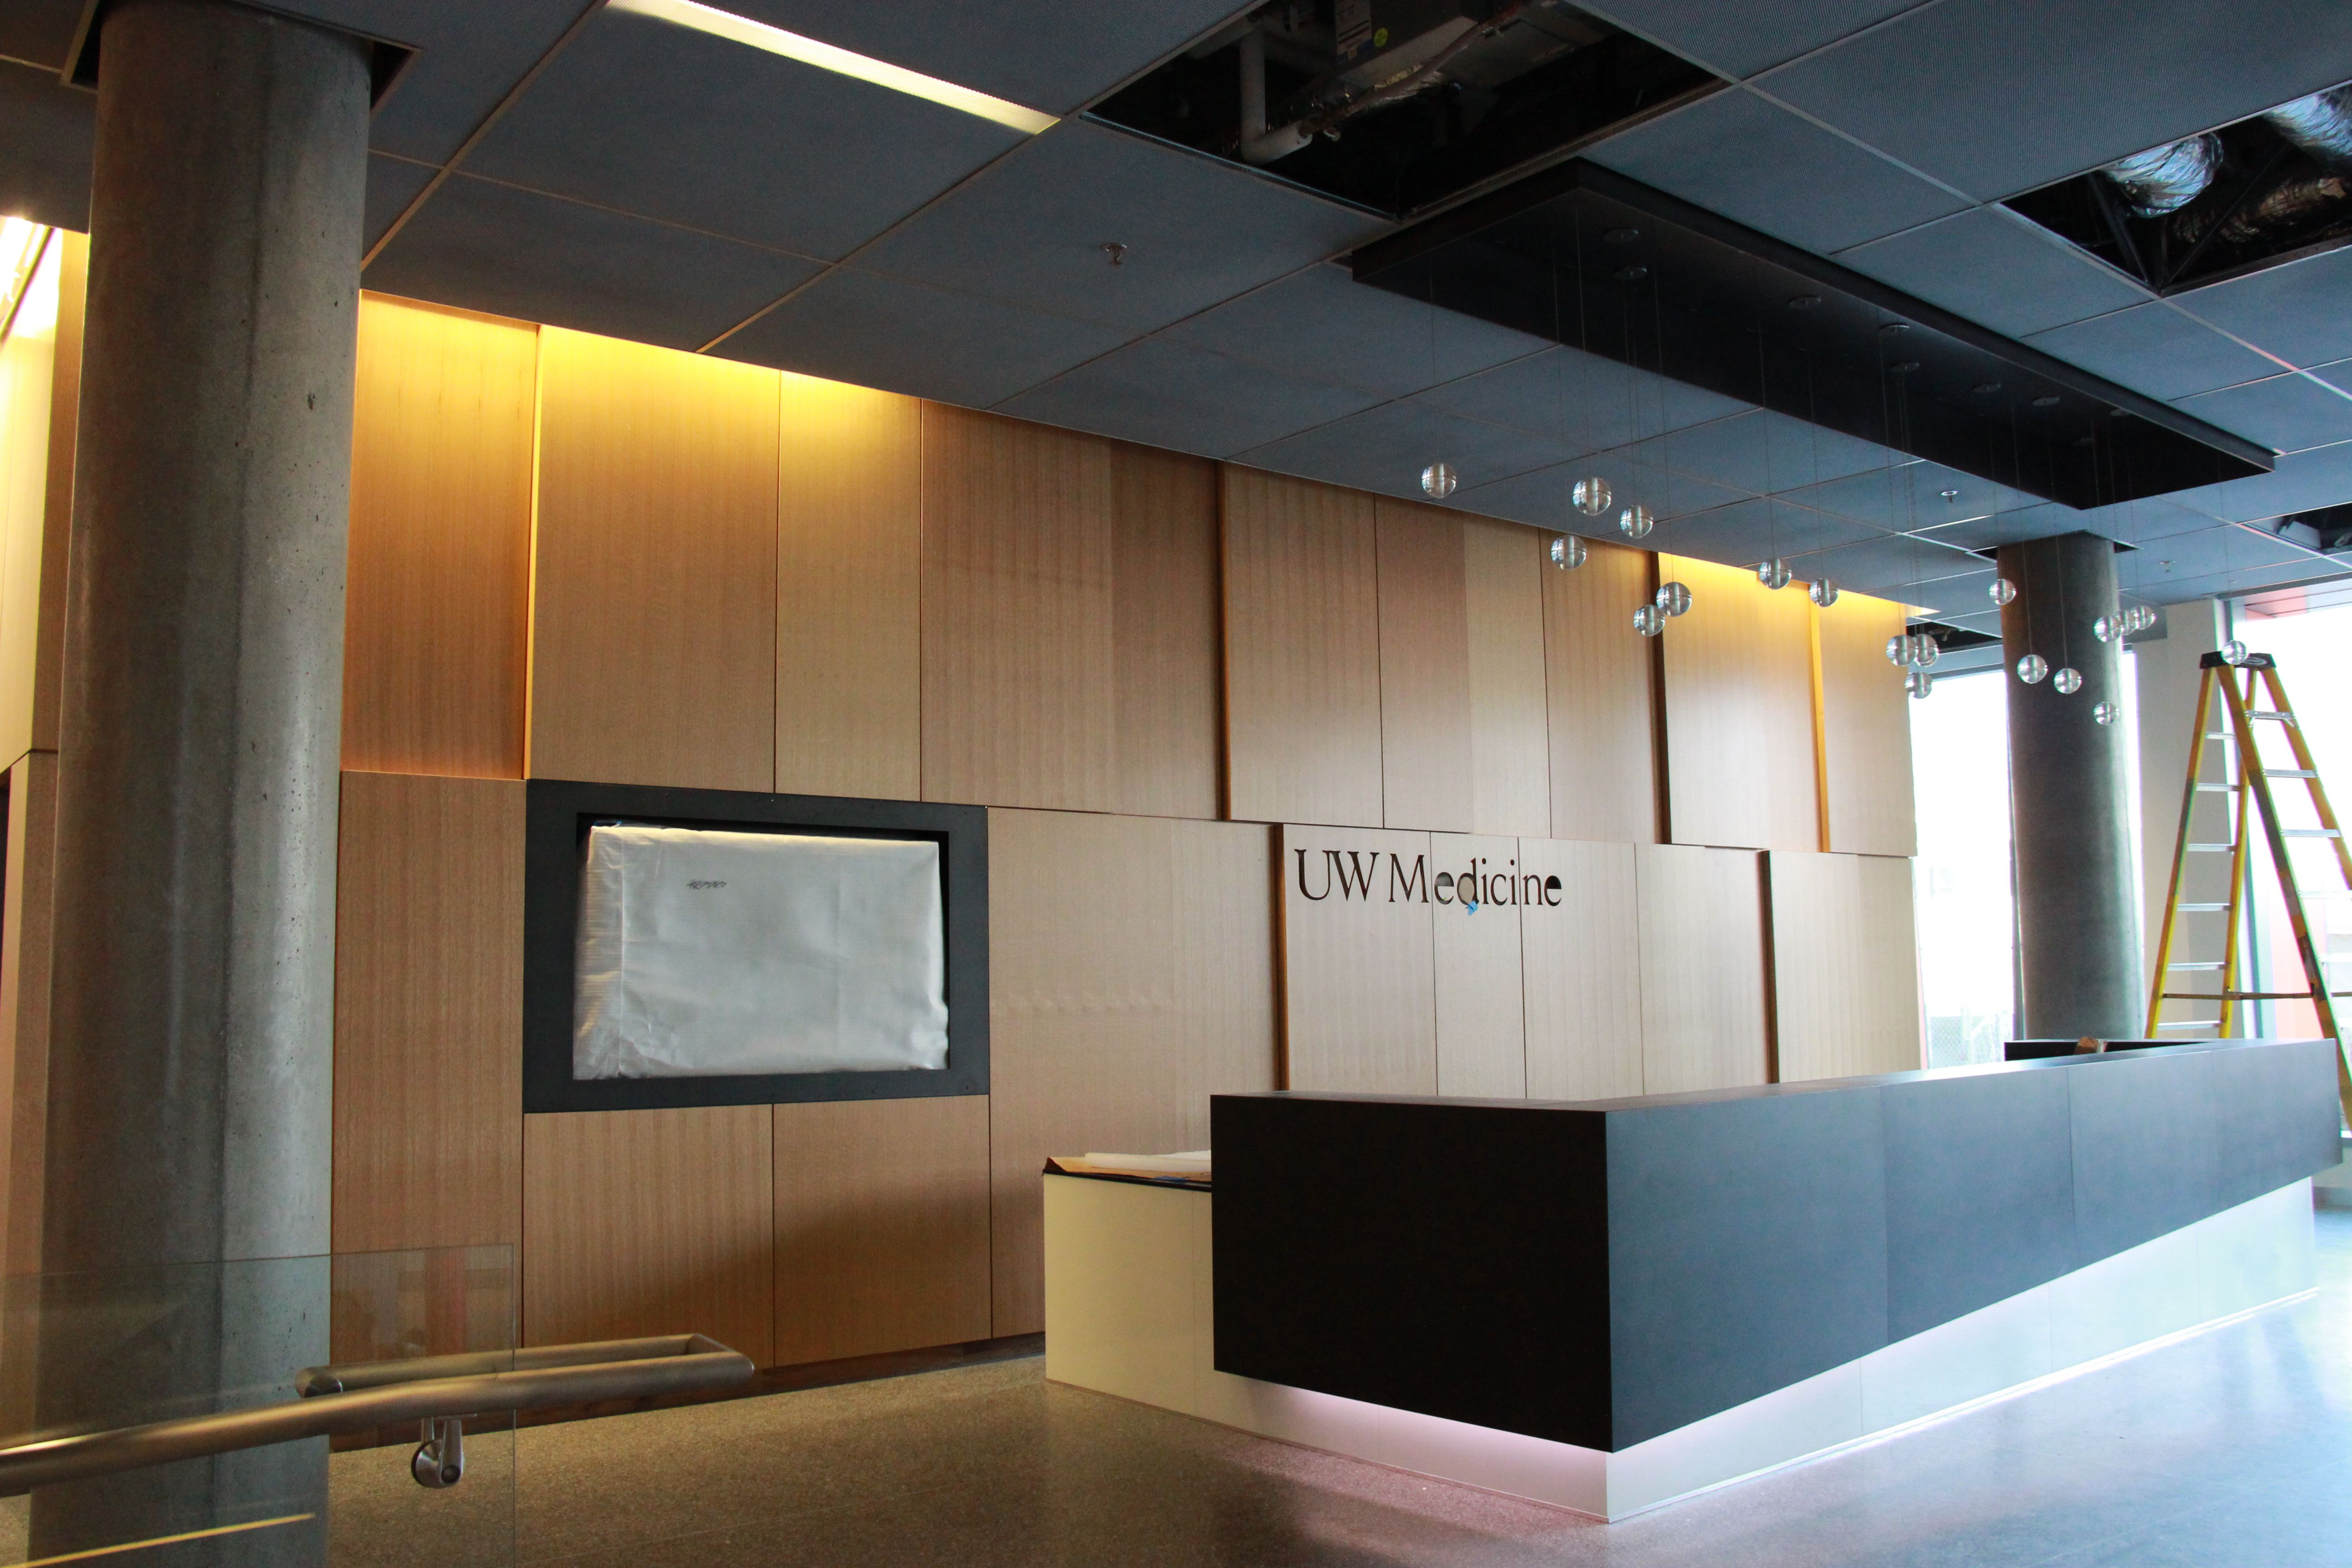 Fabric Panels To Cover Storage Area : Laser logo on wall behind reception panels hide storage